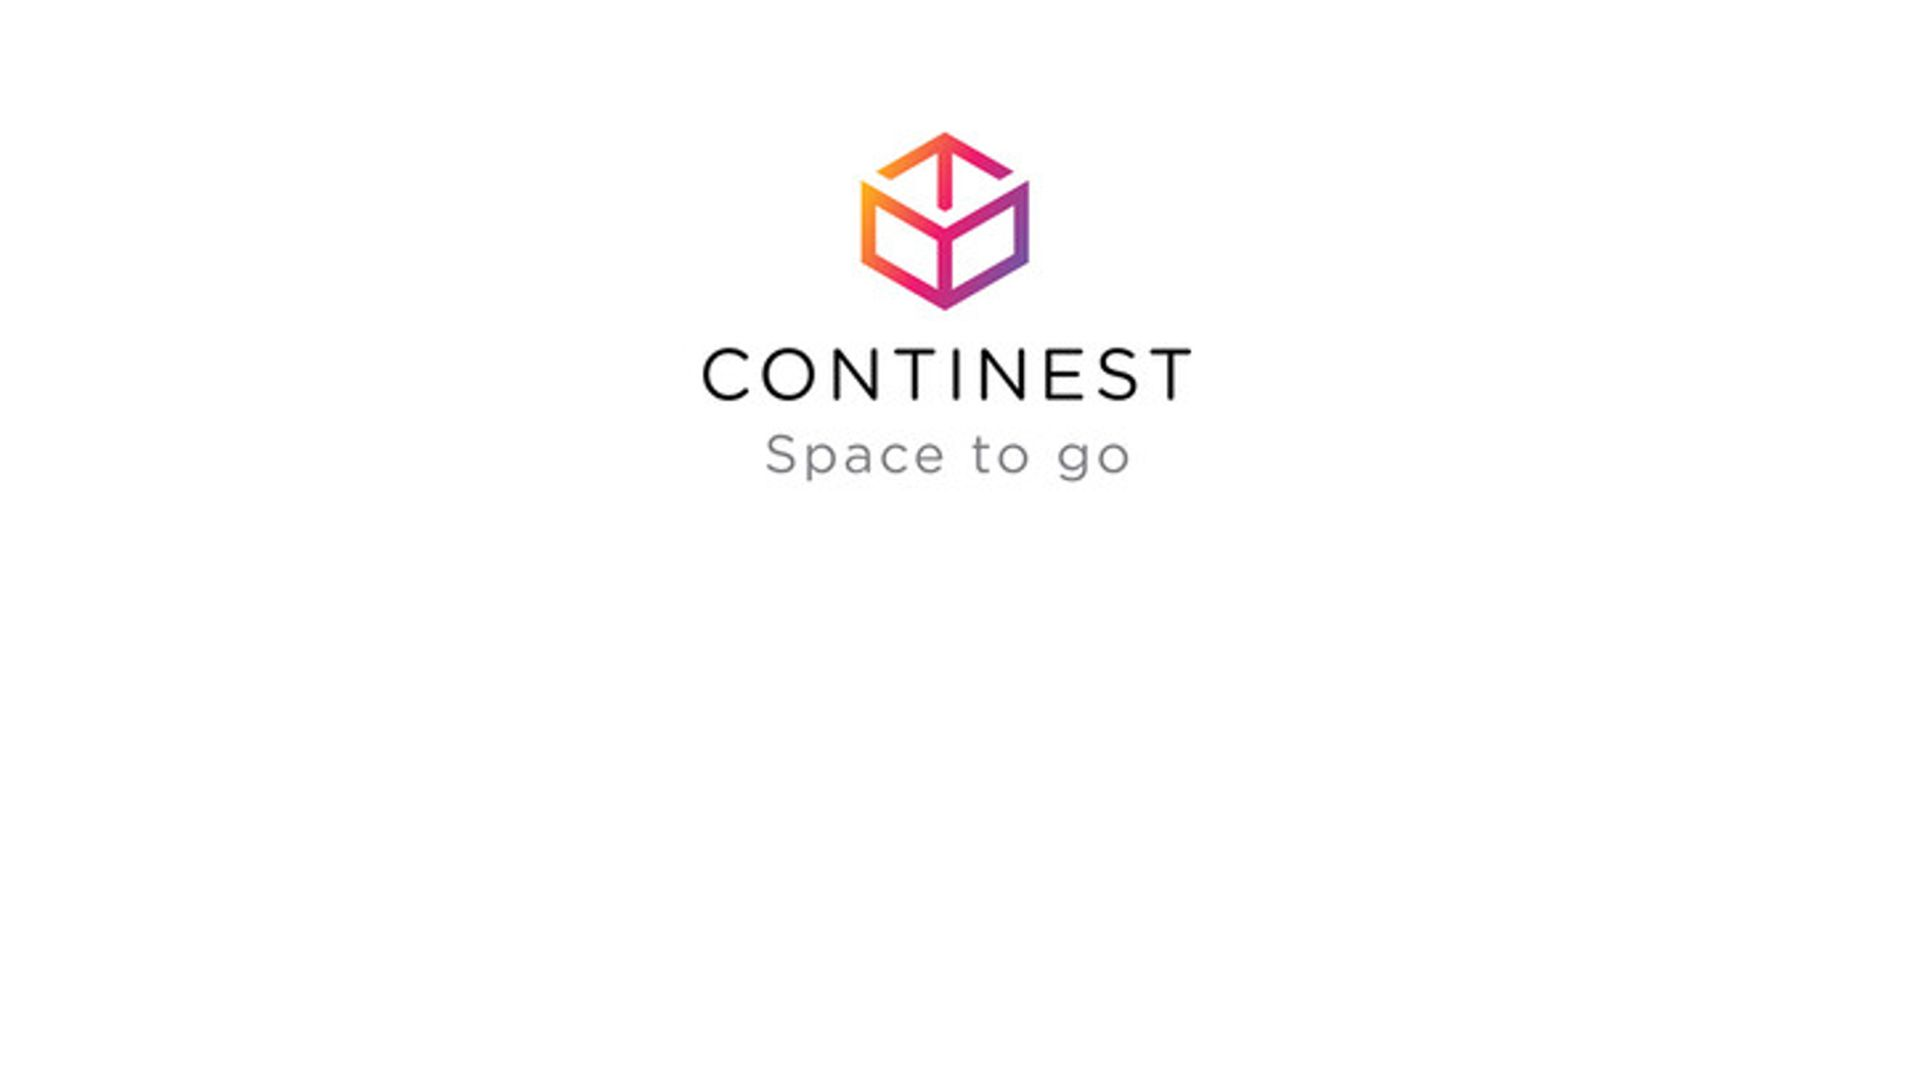 The foldable container manufacturing plant of Continest was handed over in Székesfehérvár